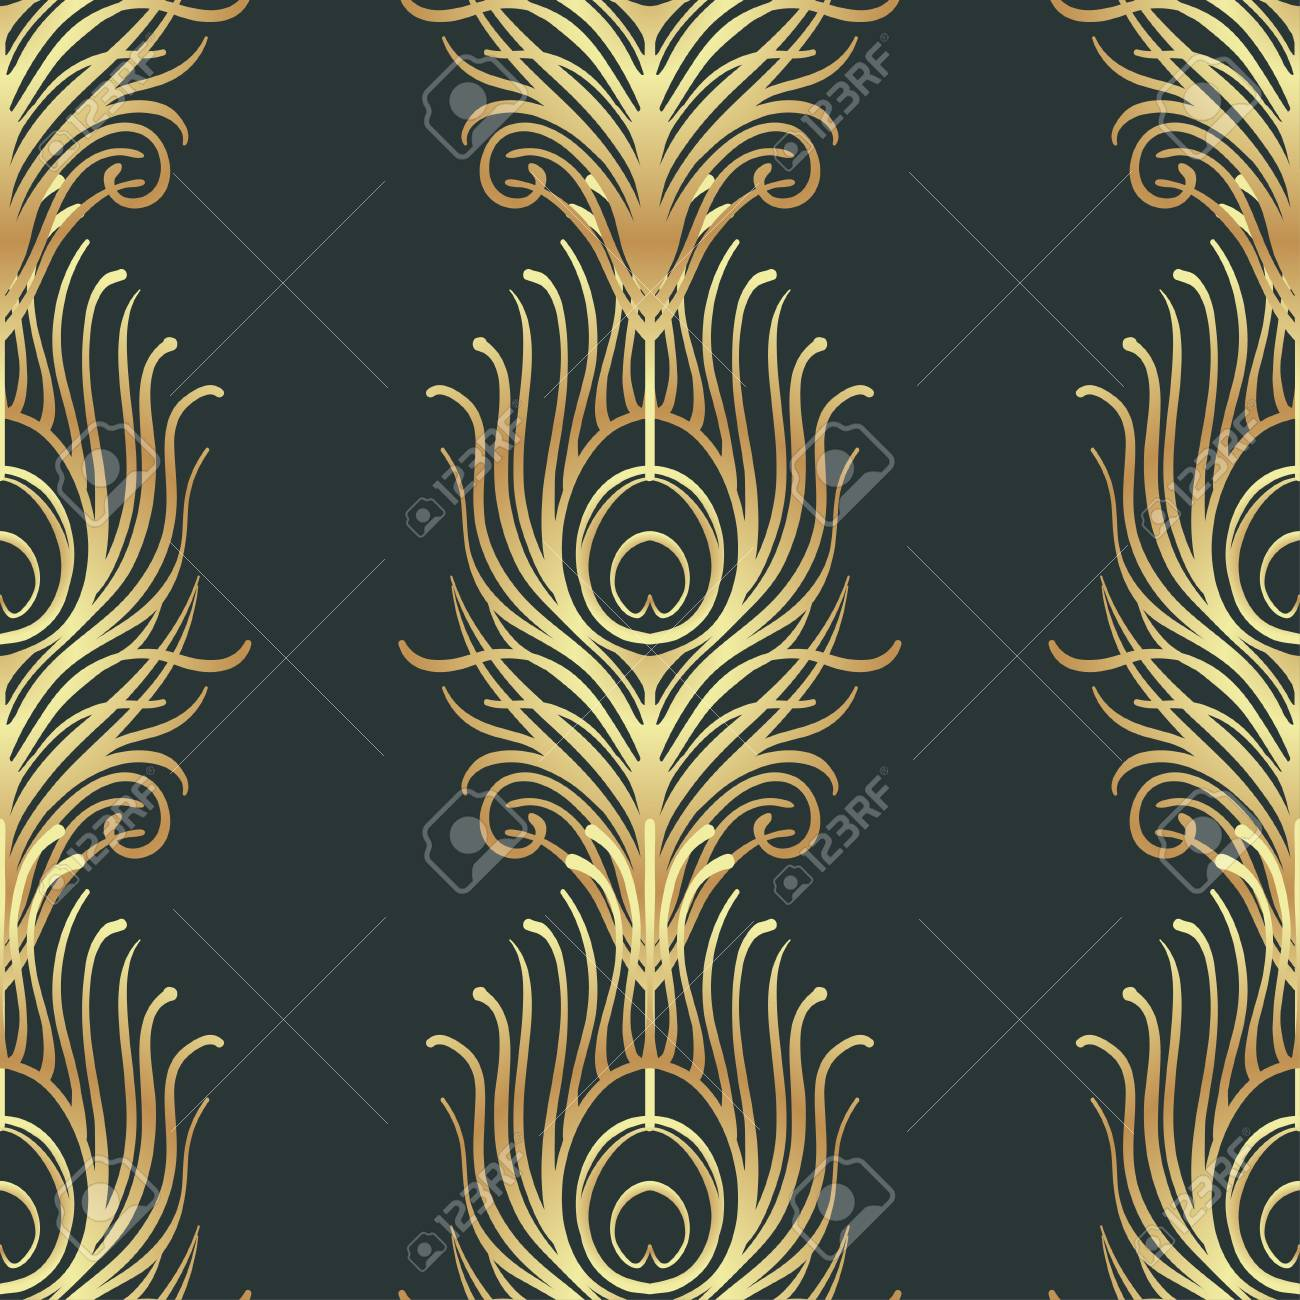 Art Deco Style Geometric Seamless Pattern In Black And Gold Vector Illustration Roaring 1920s